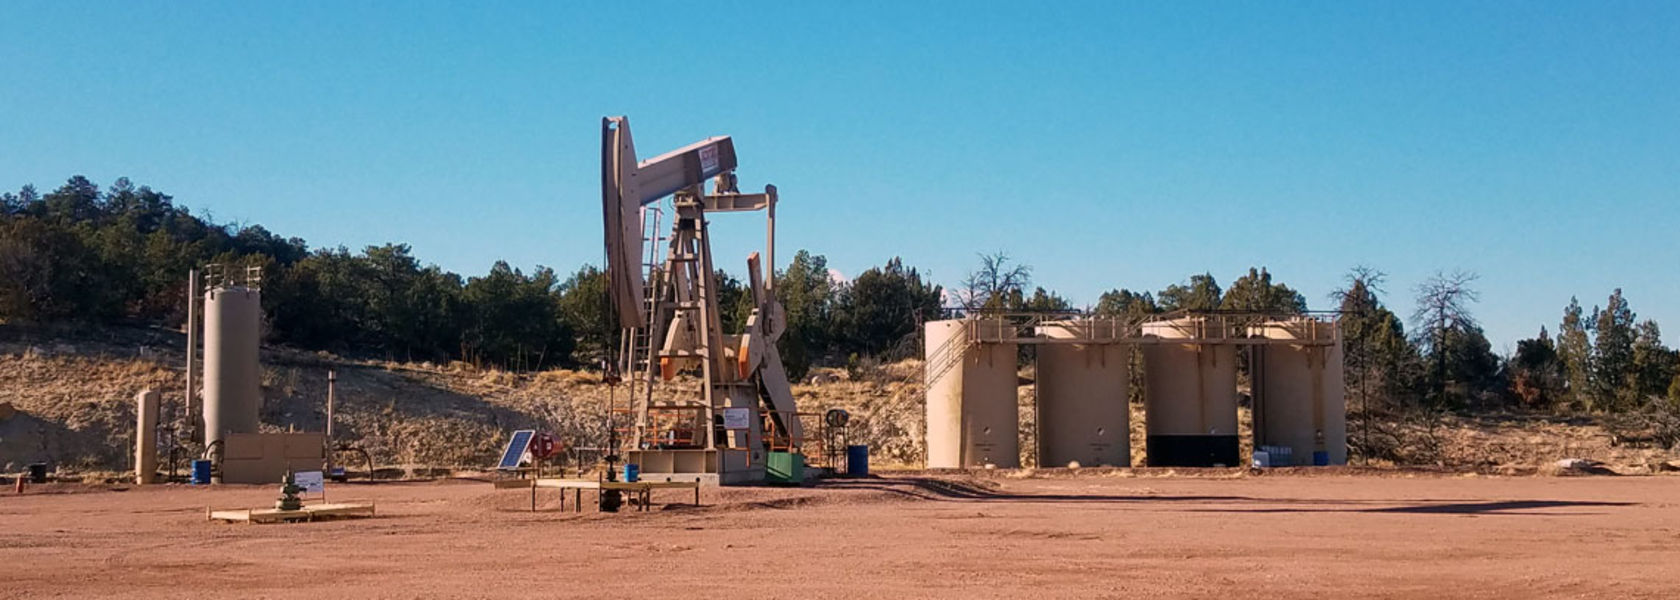 Fremont confirms high quality oil at JW Powell